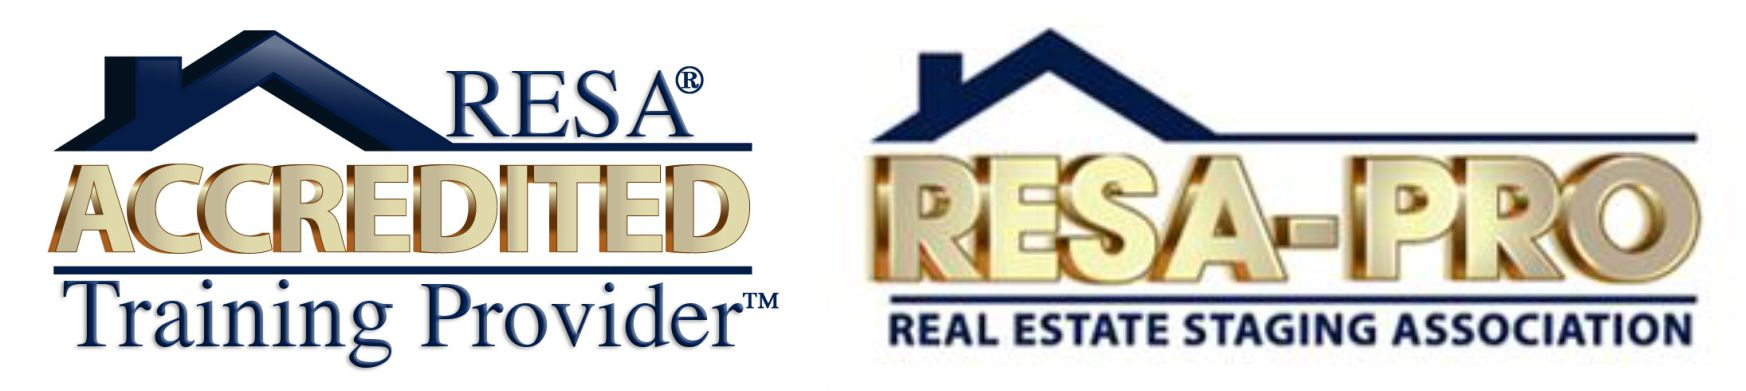 real estate staging association accredited pro